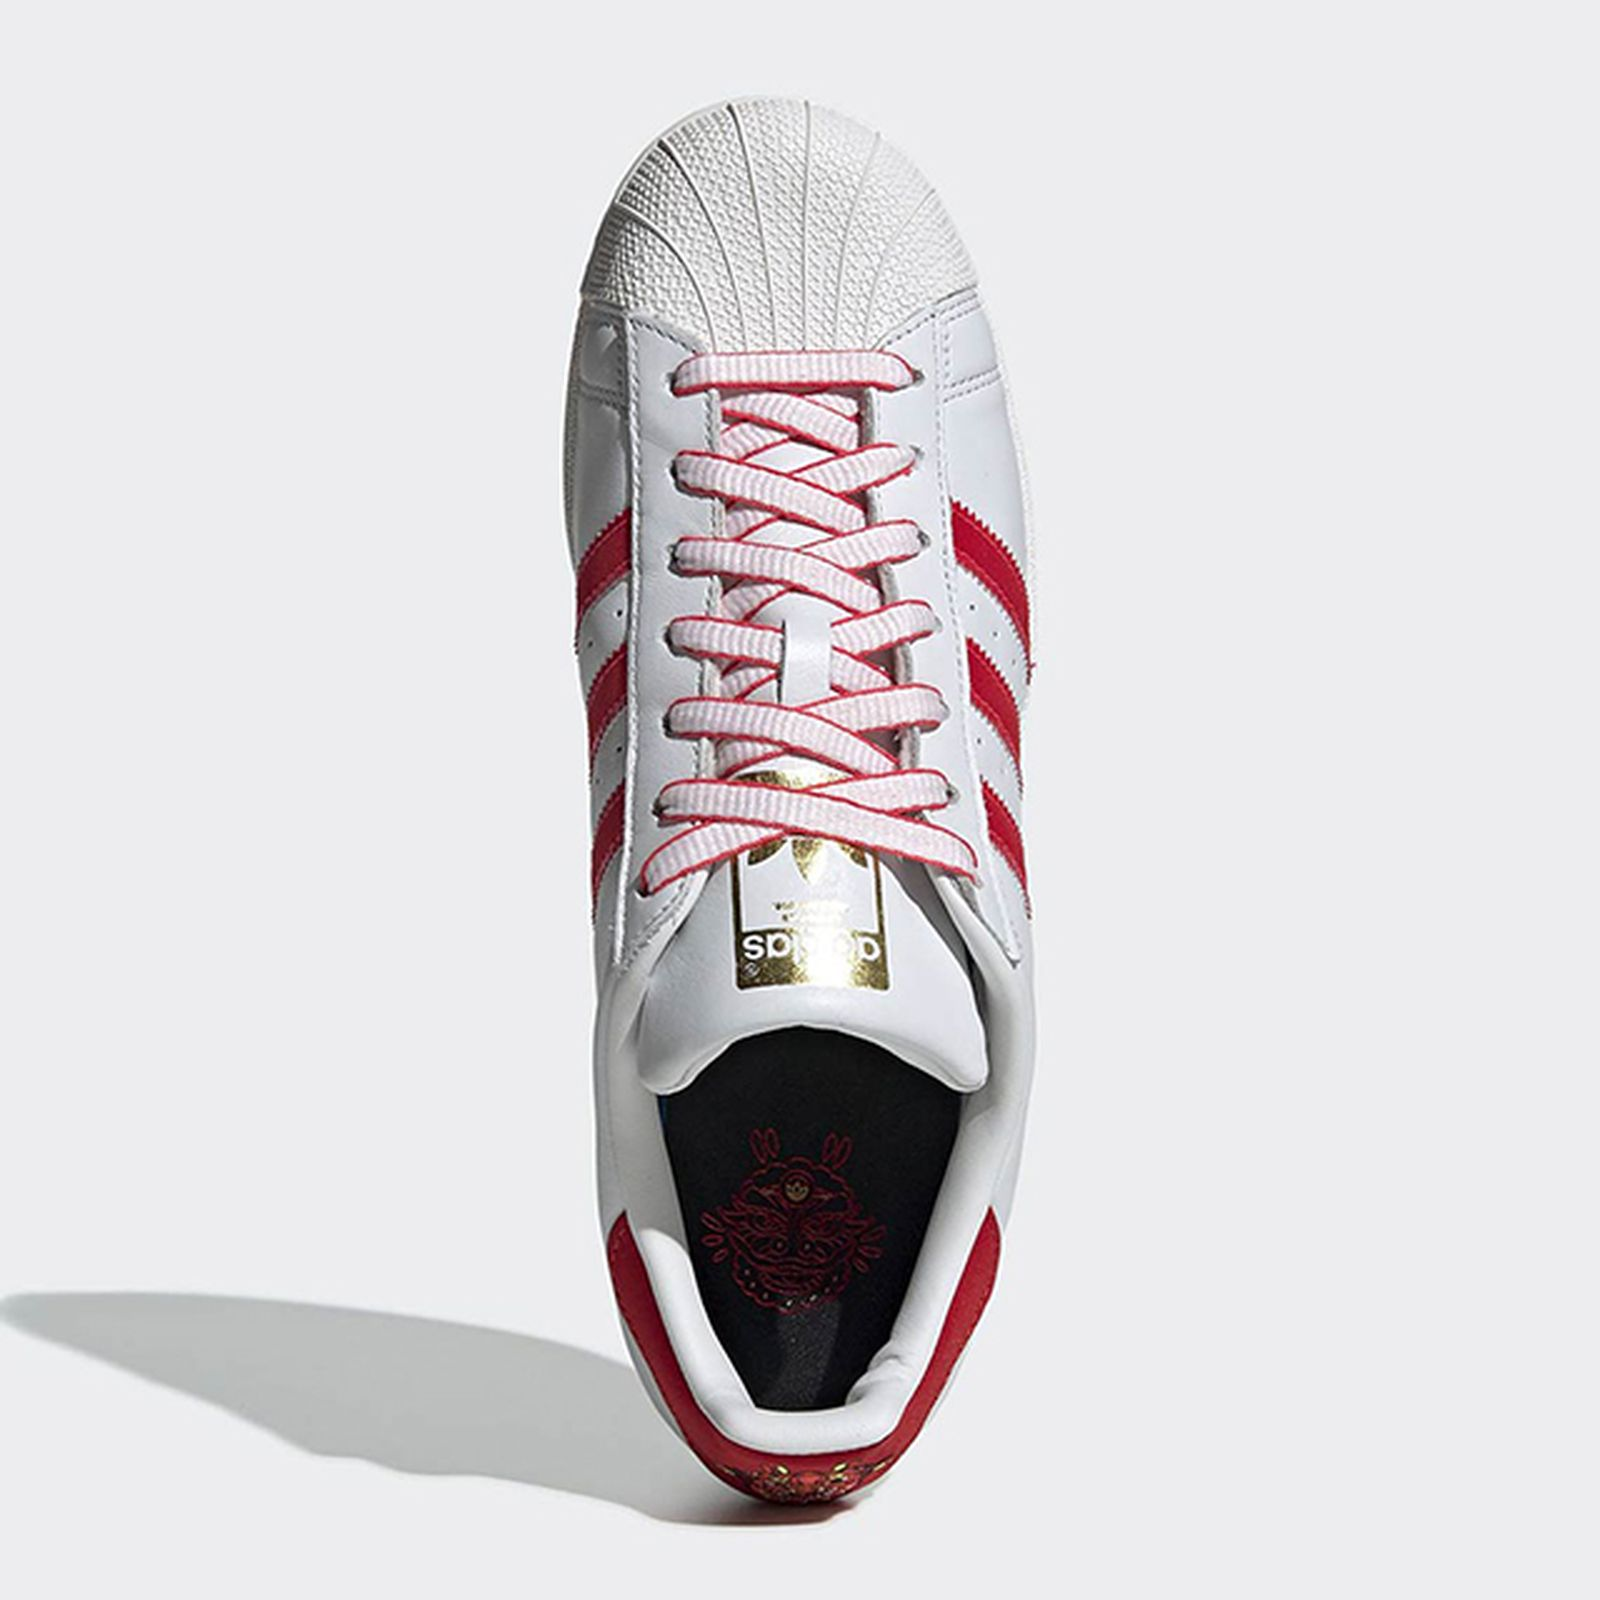 adidas chinese new year 2019 sneakers adidas superstar adidas yung 96